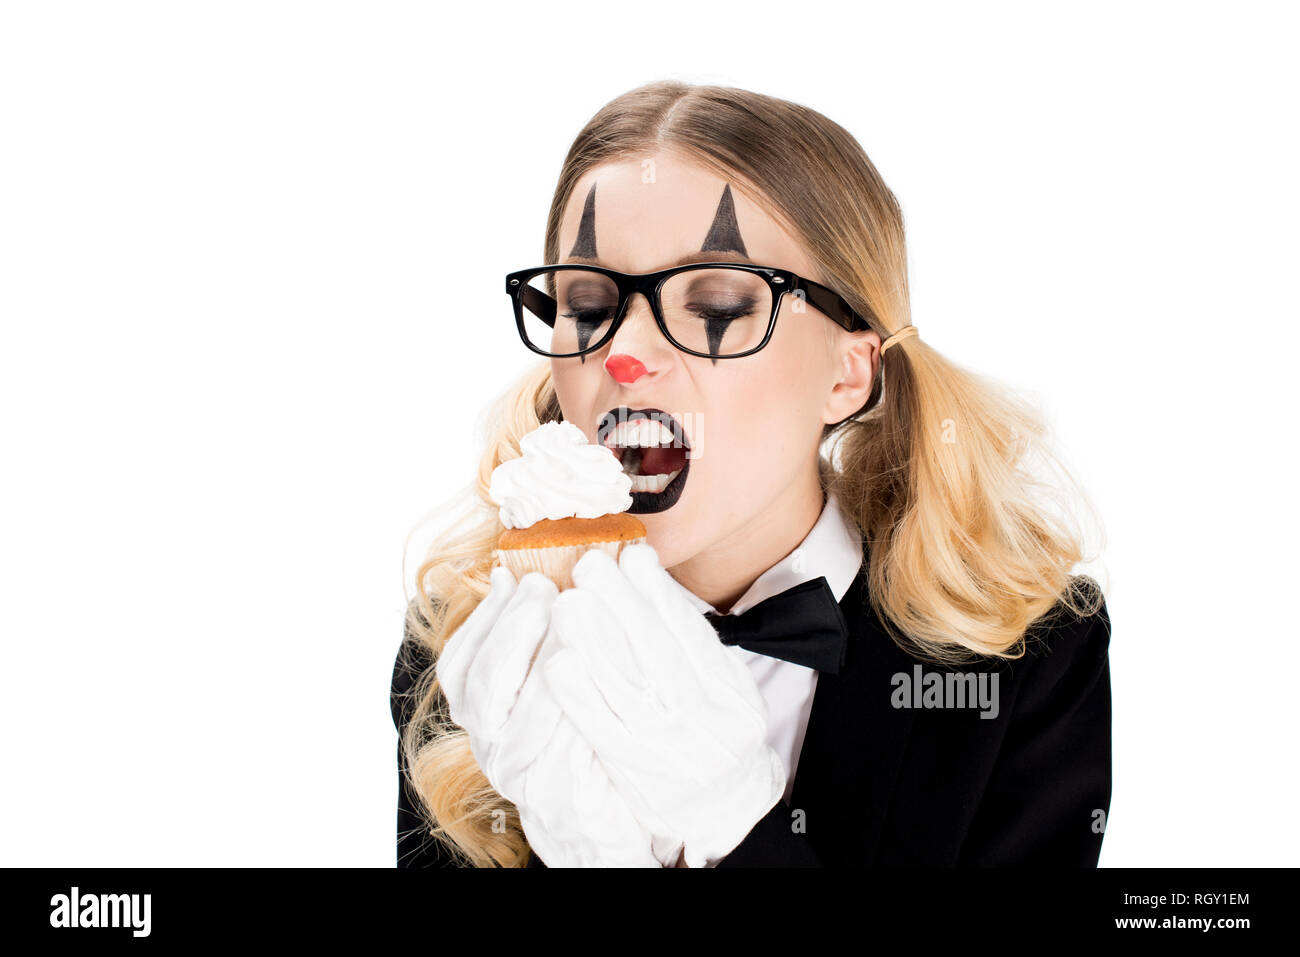 female clown in glasses looking at tasty cupcake isolated on white - Stock Image